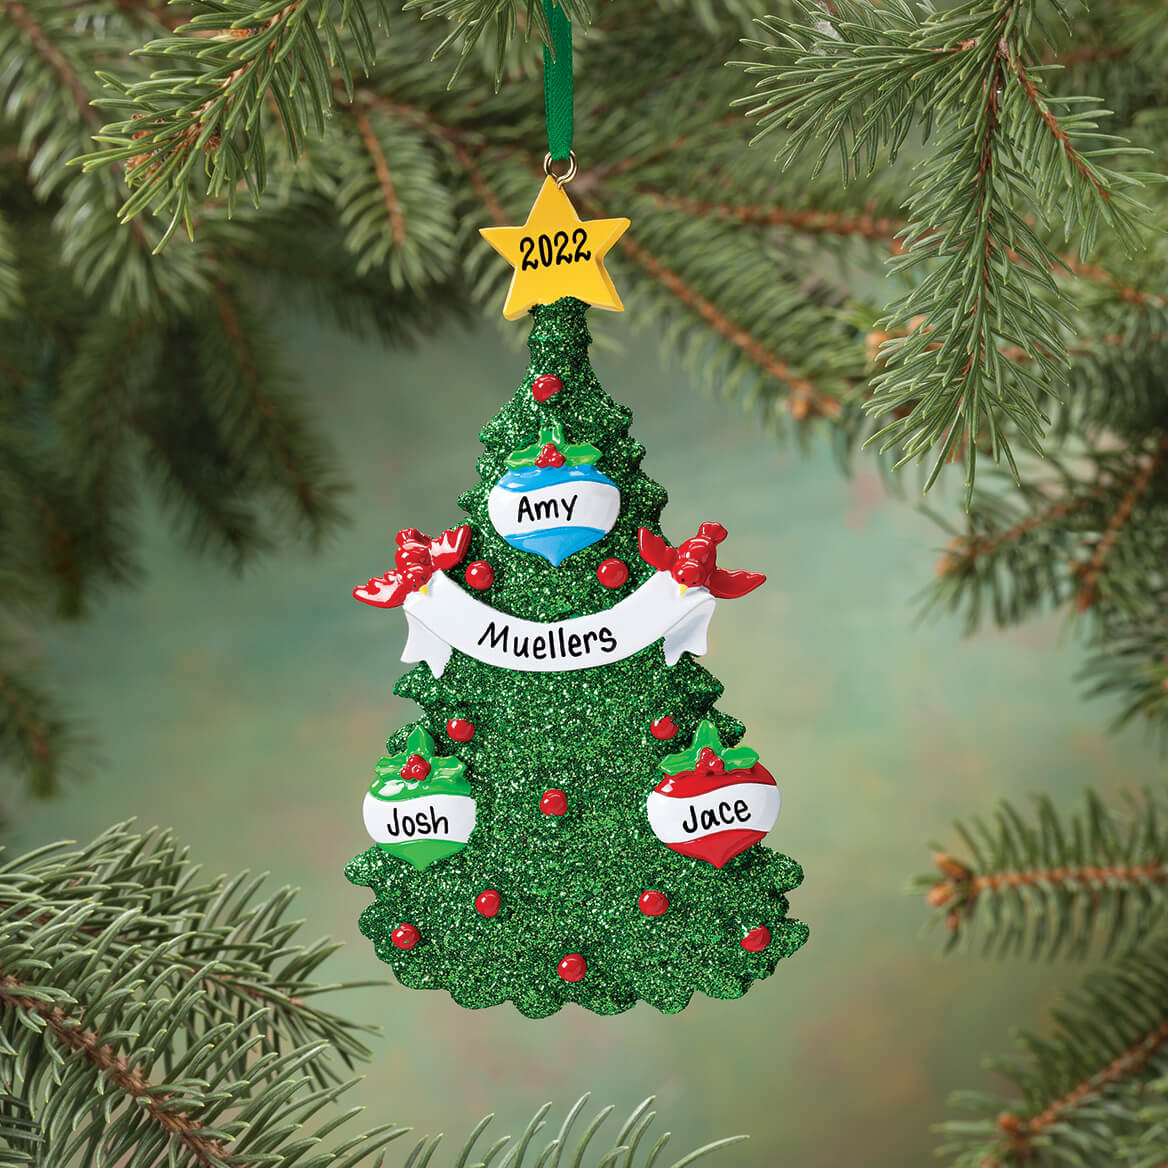 Personalized Christmas Tree Ornament-346137 Personalized Christmas Tree Ornament-346137